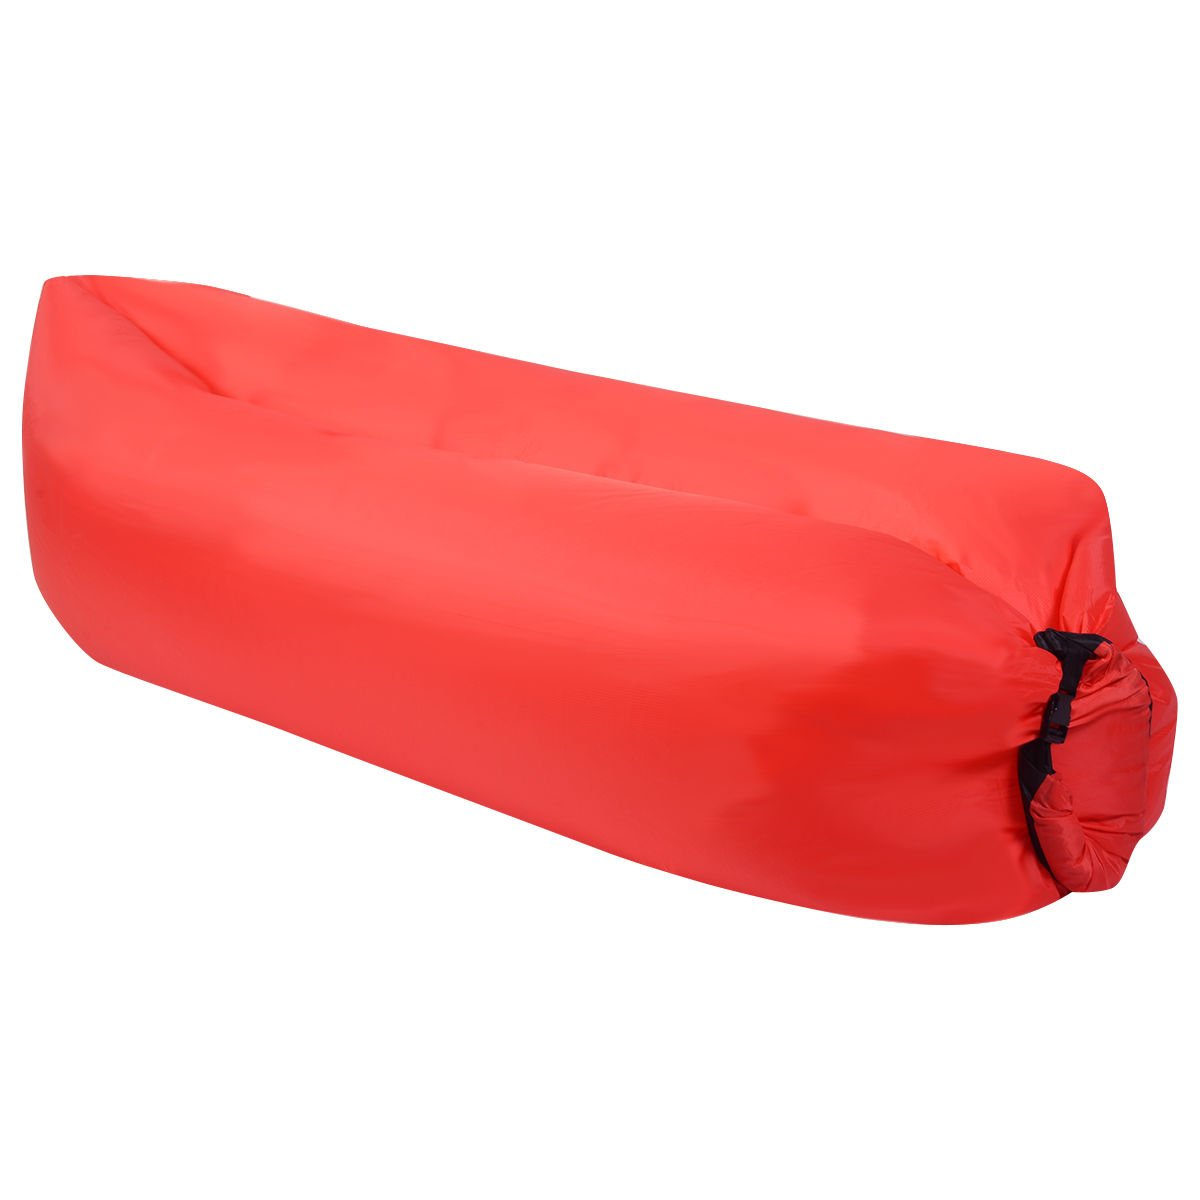 Eight24hours Outdoor Lazy Inflatable Couch Air Sleeping Sofa Lounger Bag Camping Bed Portable - Red + FREE E - Book